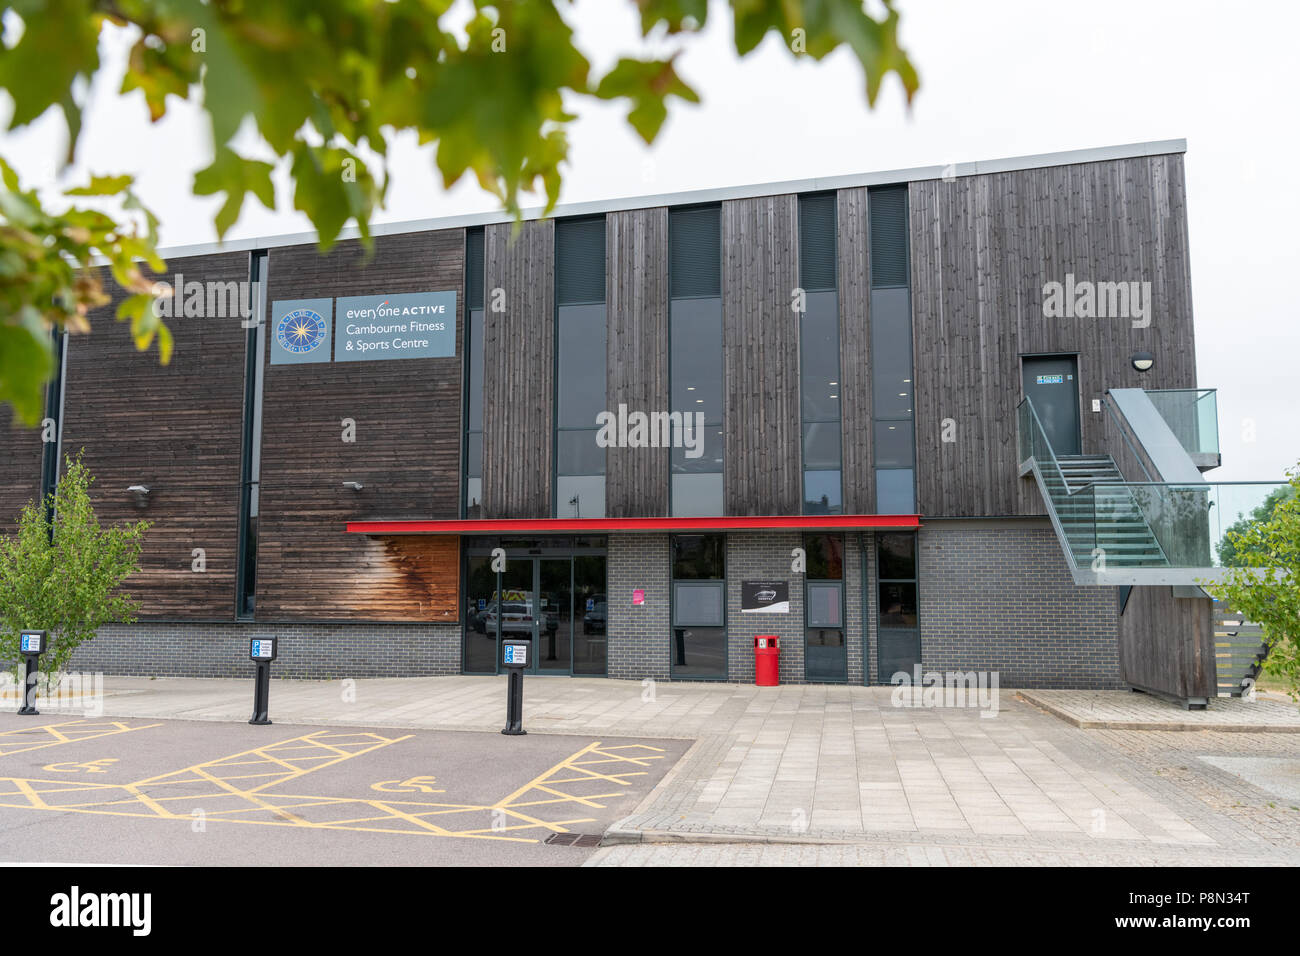 Everyone Active sports and fitness centre Cambourne, South Cambridgeshire, UK - Stock Image